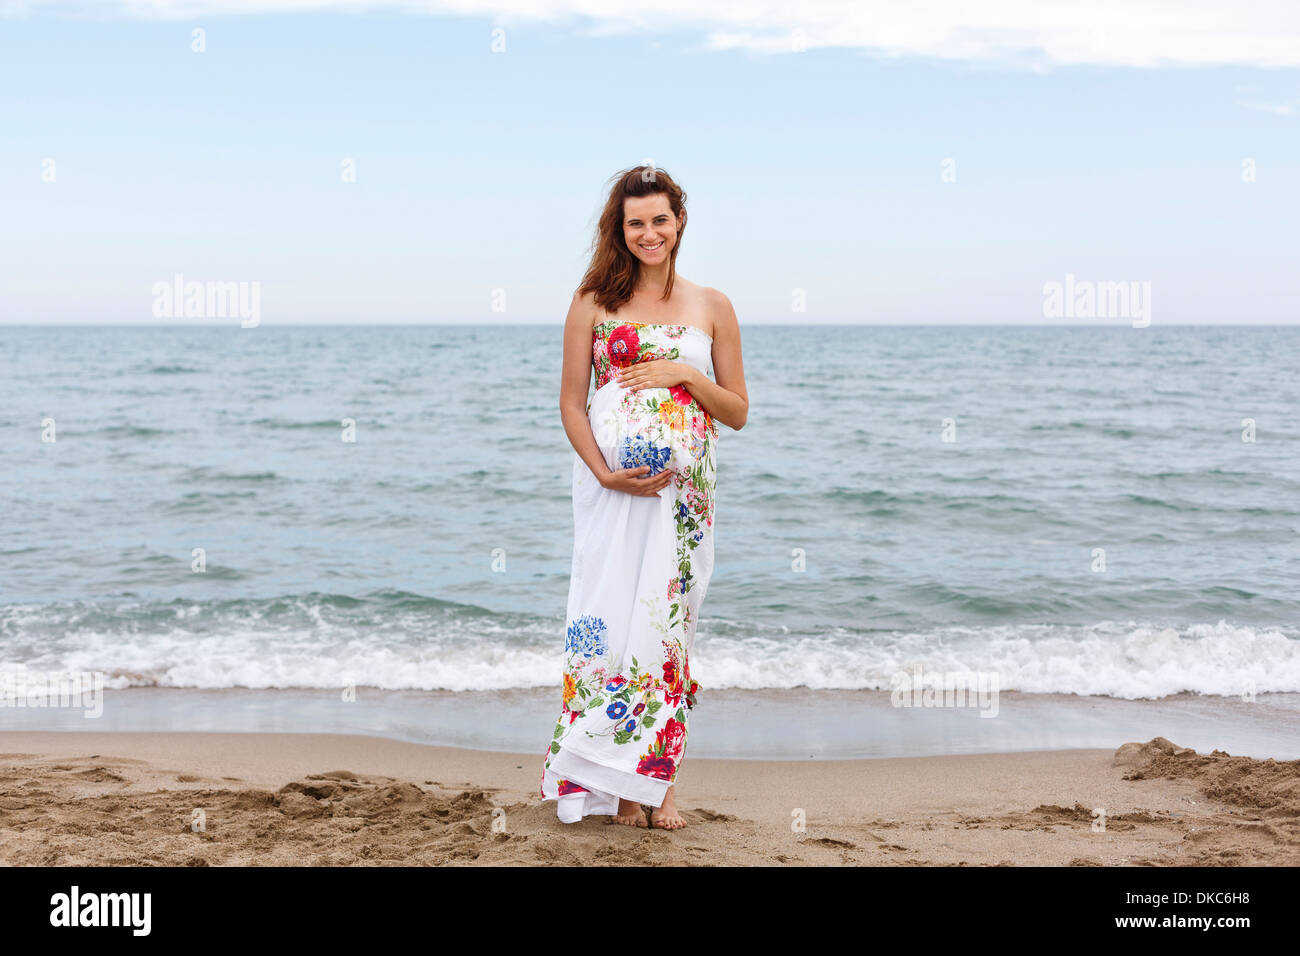 Pregnant woman standing on beach, hands on stomach - Stock Image